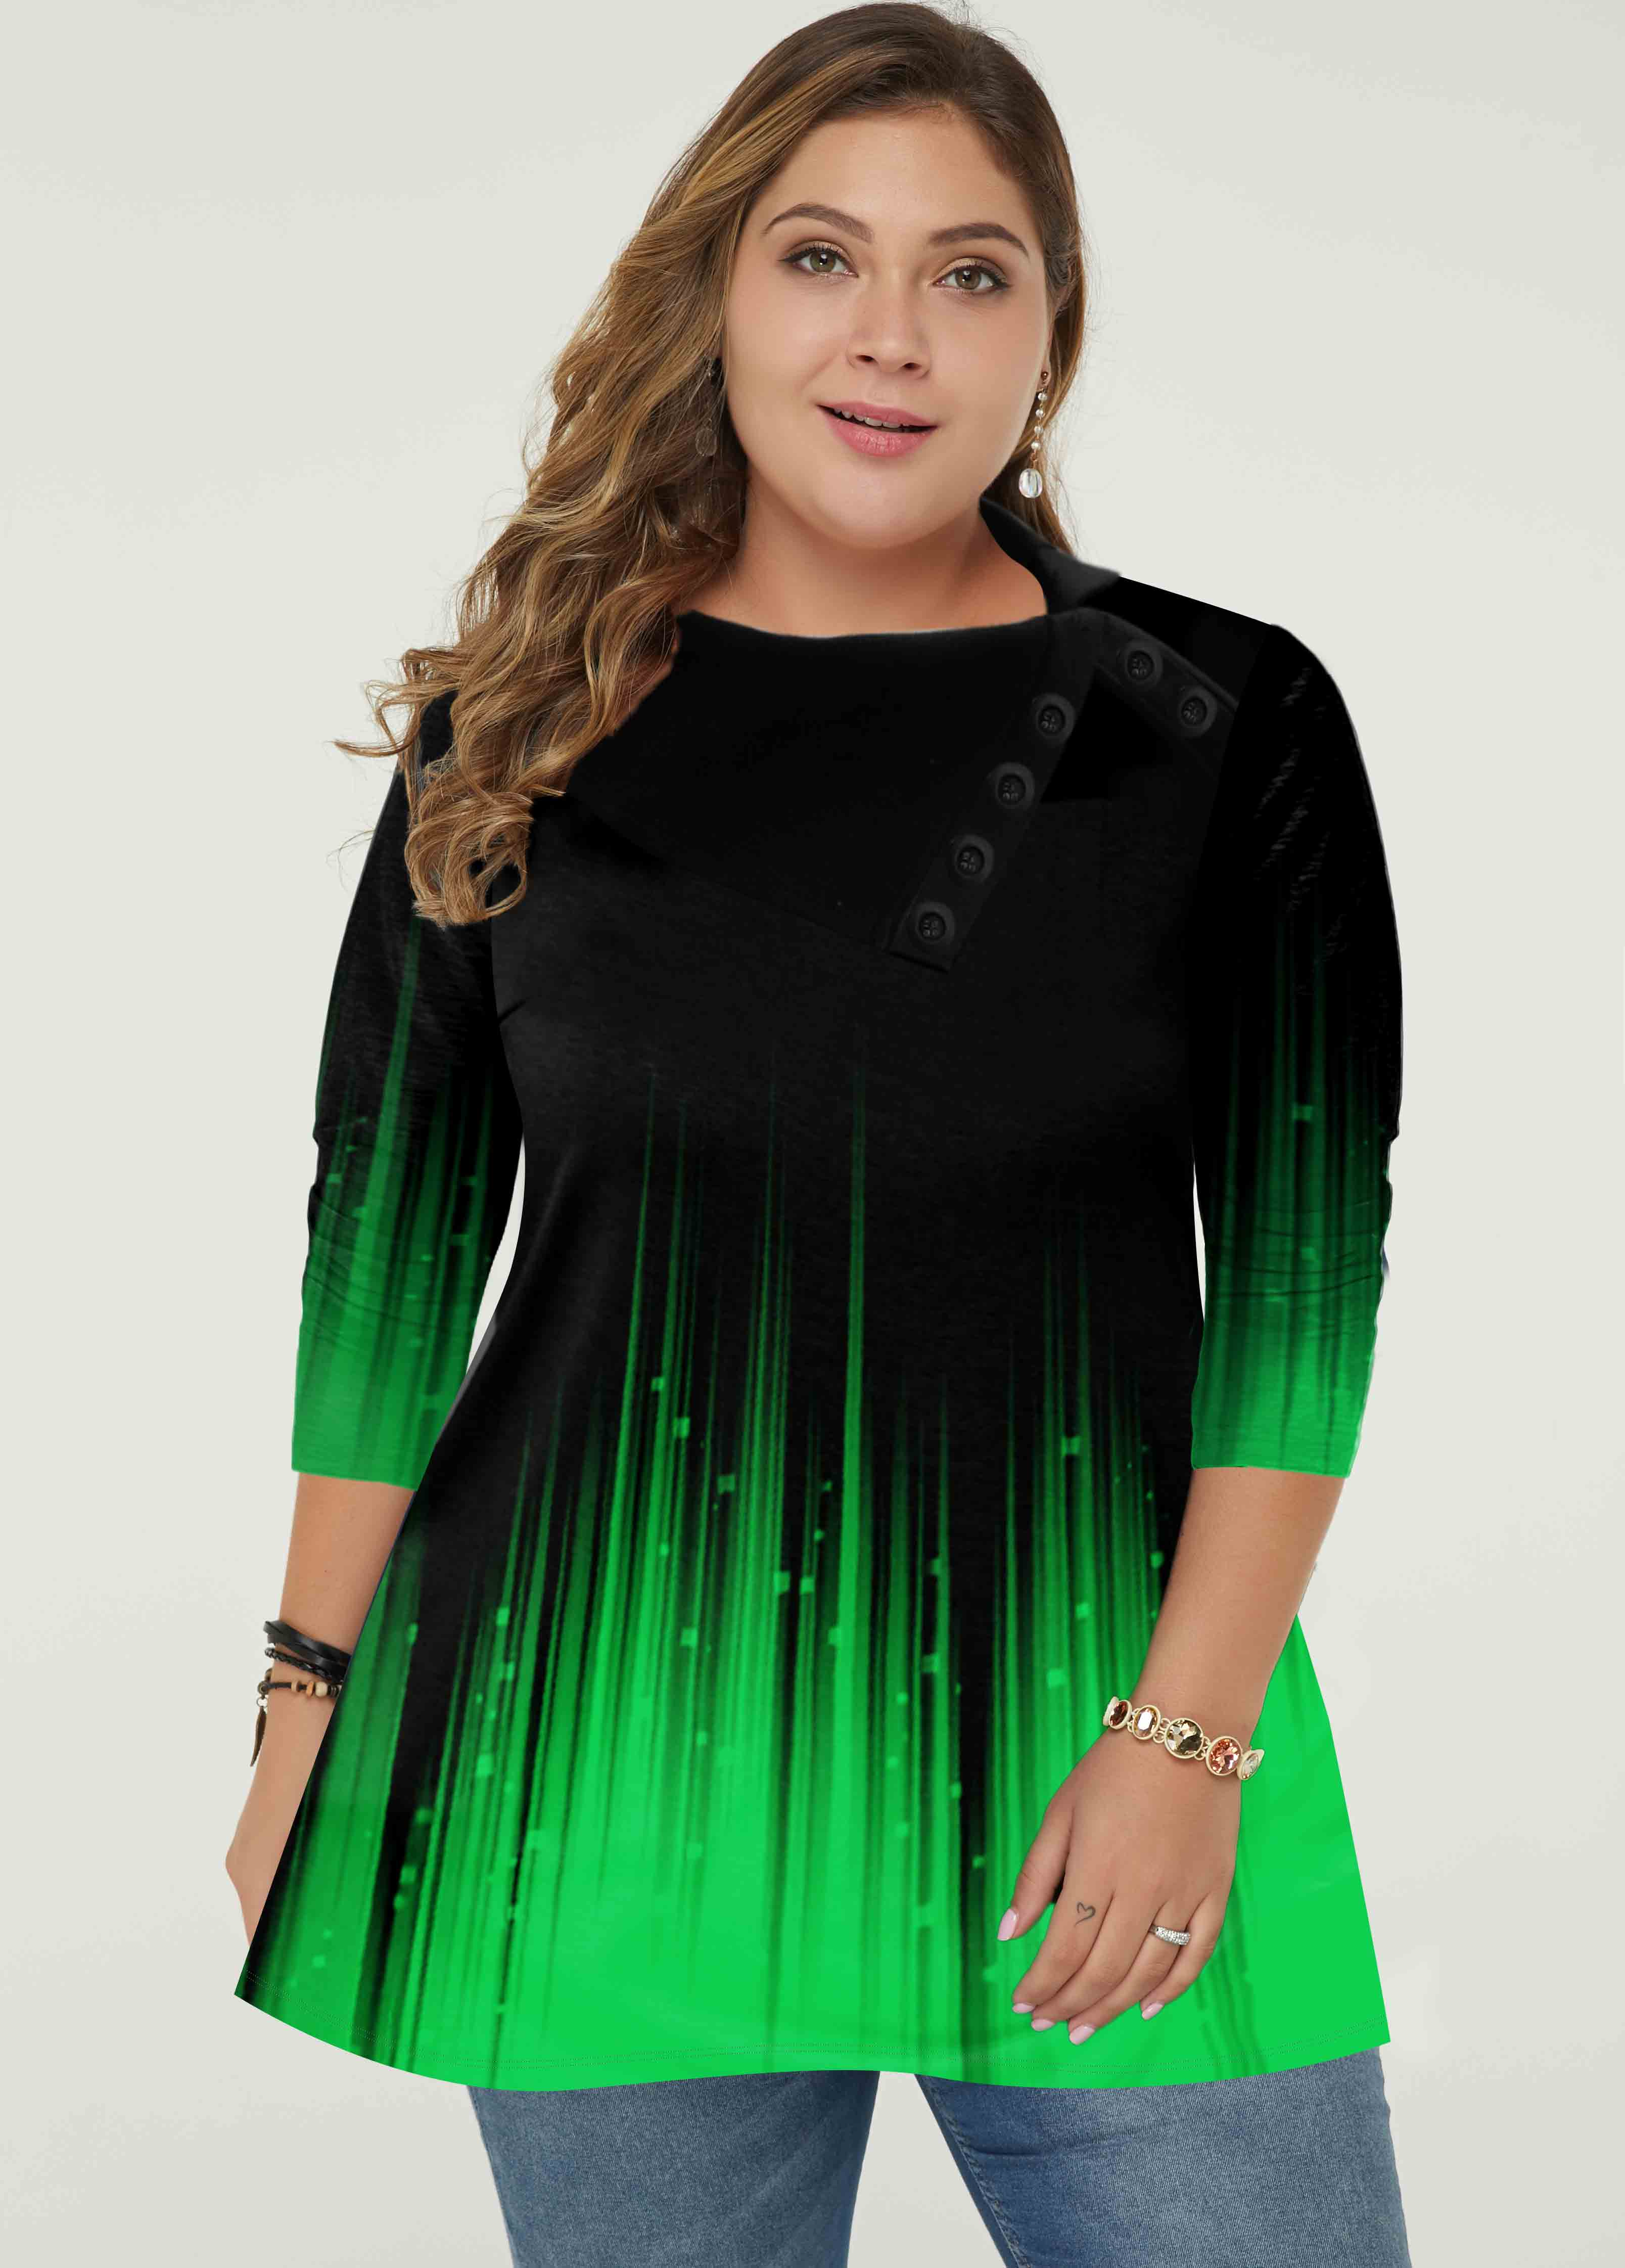 Plus Size Gradient Green Long Sleeve Tunic Top